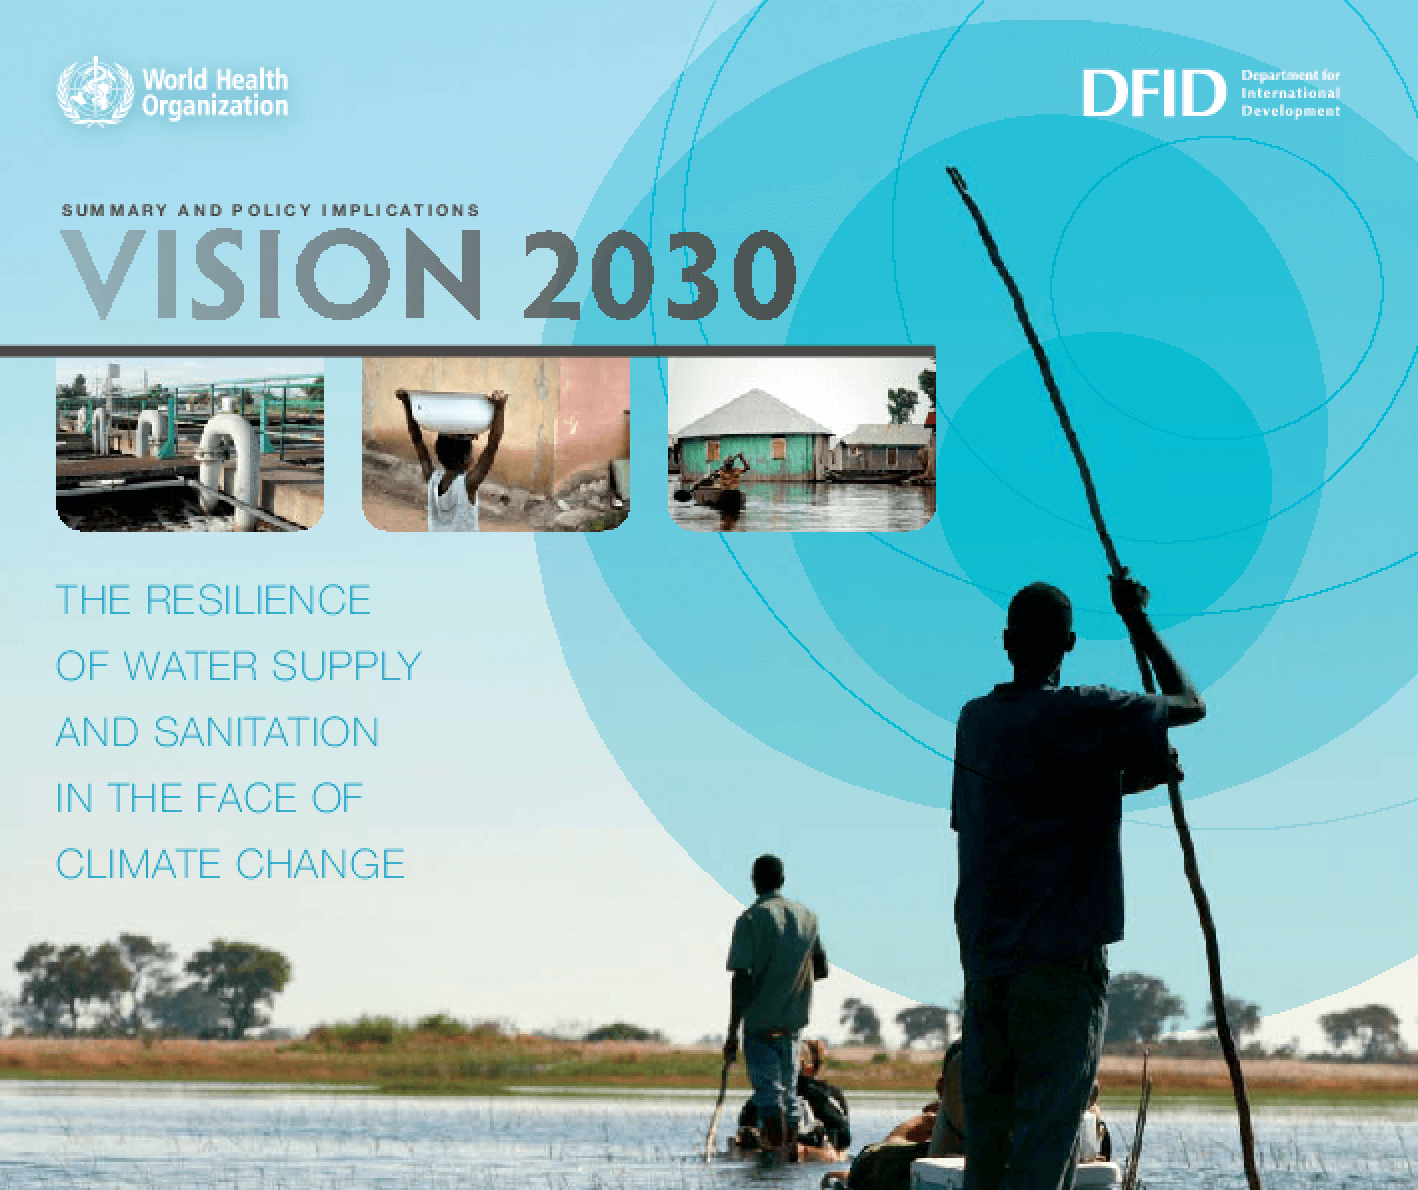 Summary and Policy Implications Vision 2030: The Resilience of Water Supply and Sanitation in the Face of Climate Change